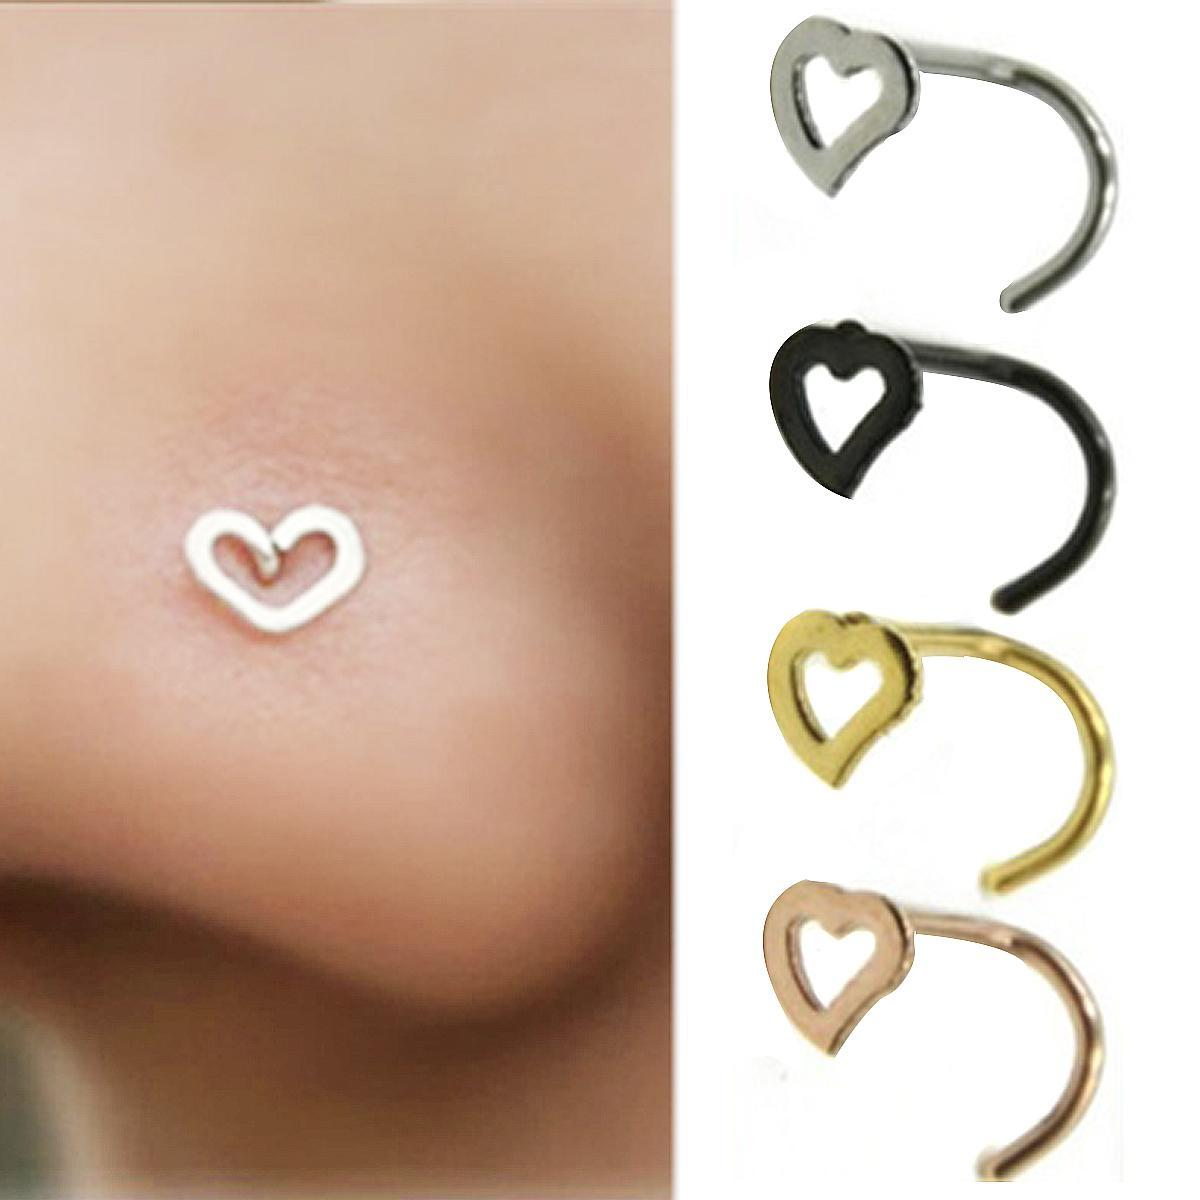 1pcs Shellhard Cute Hollow Heart Shaped Nose Ring Studs For Women Body Piercing Jewelry Accessories Vintage Fake Nose Ring